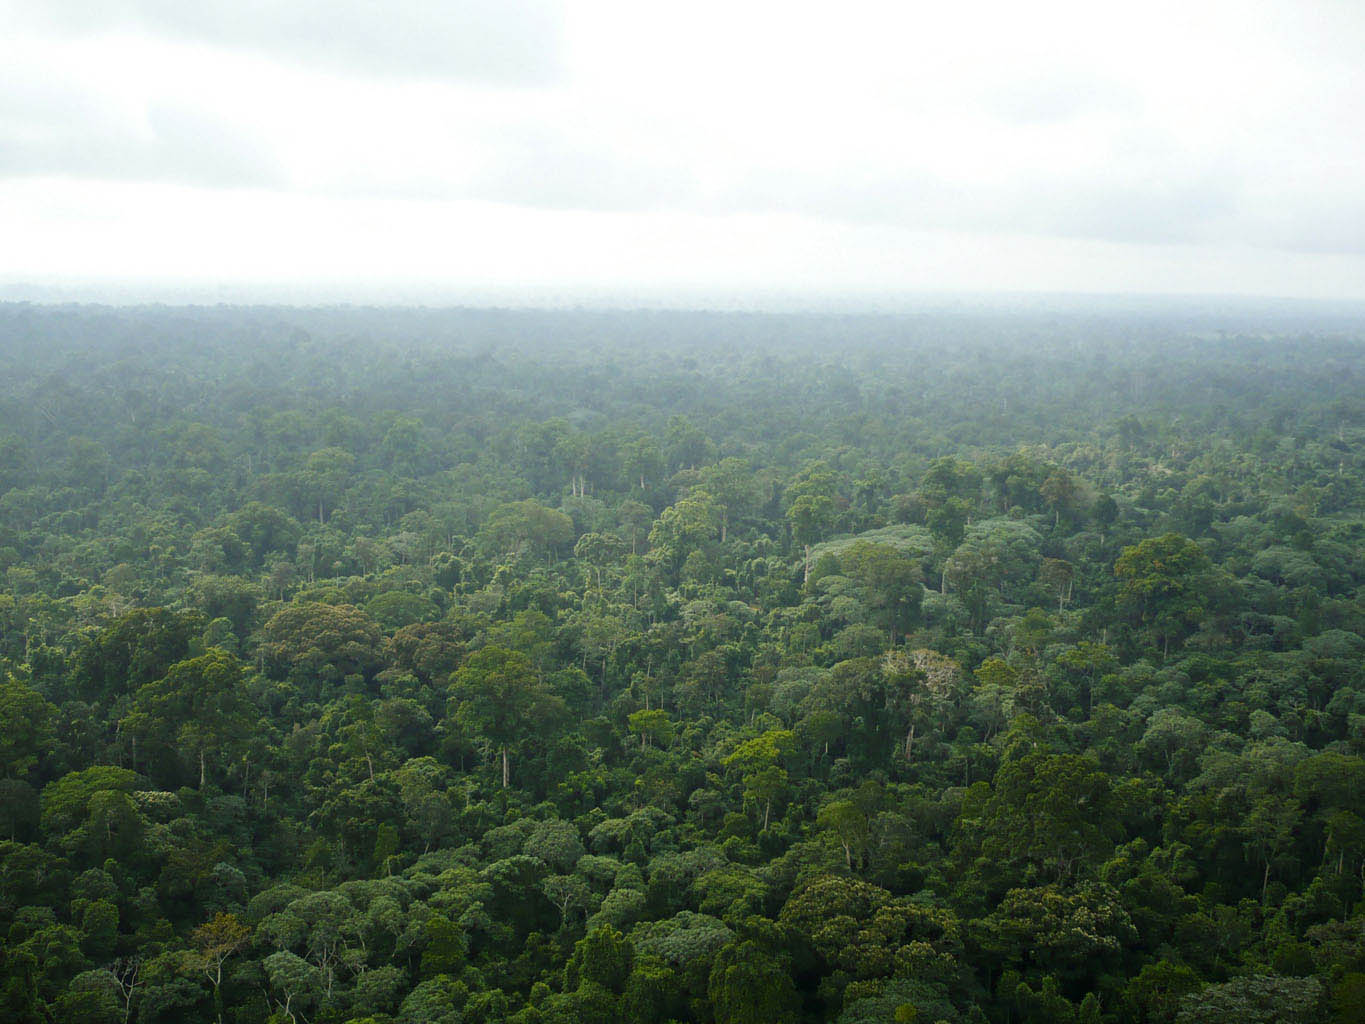 Primary Rain forest - Ogooue Maritime Province Southwestern Gabon